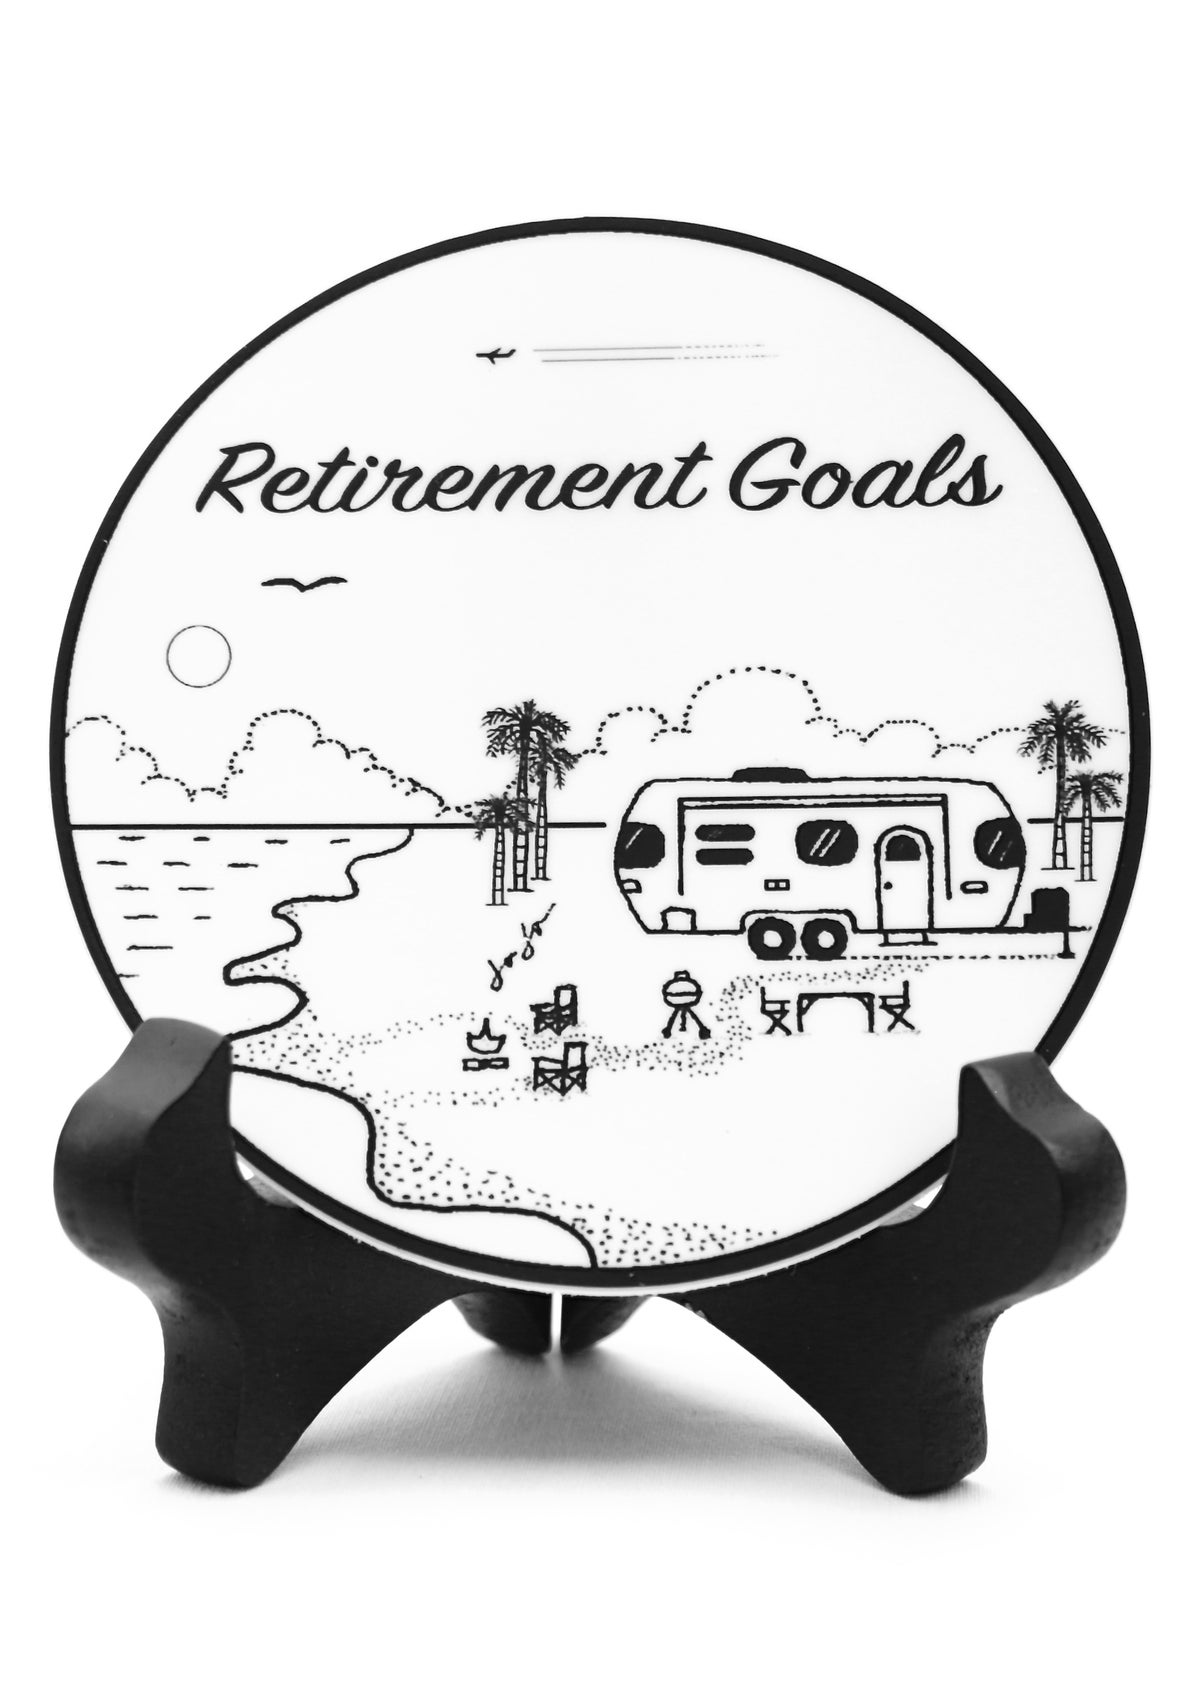 Image of Retirement Goals